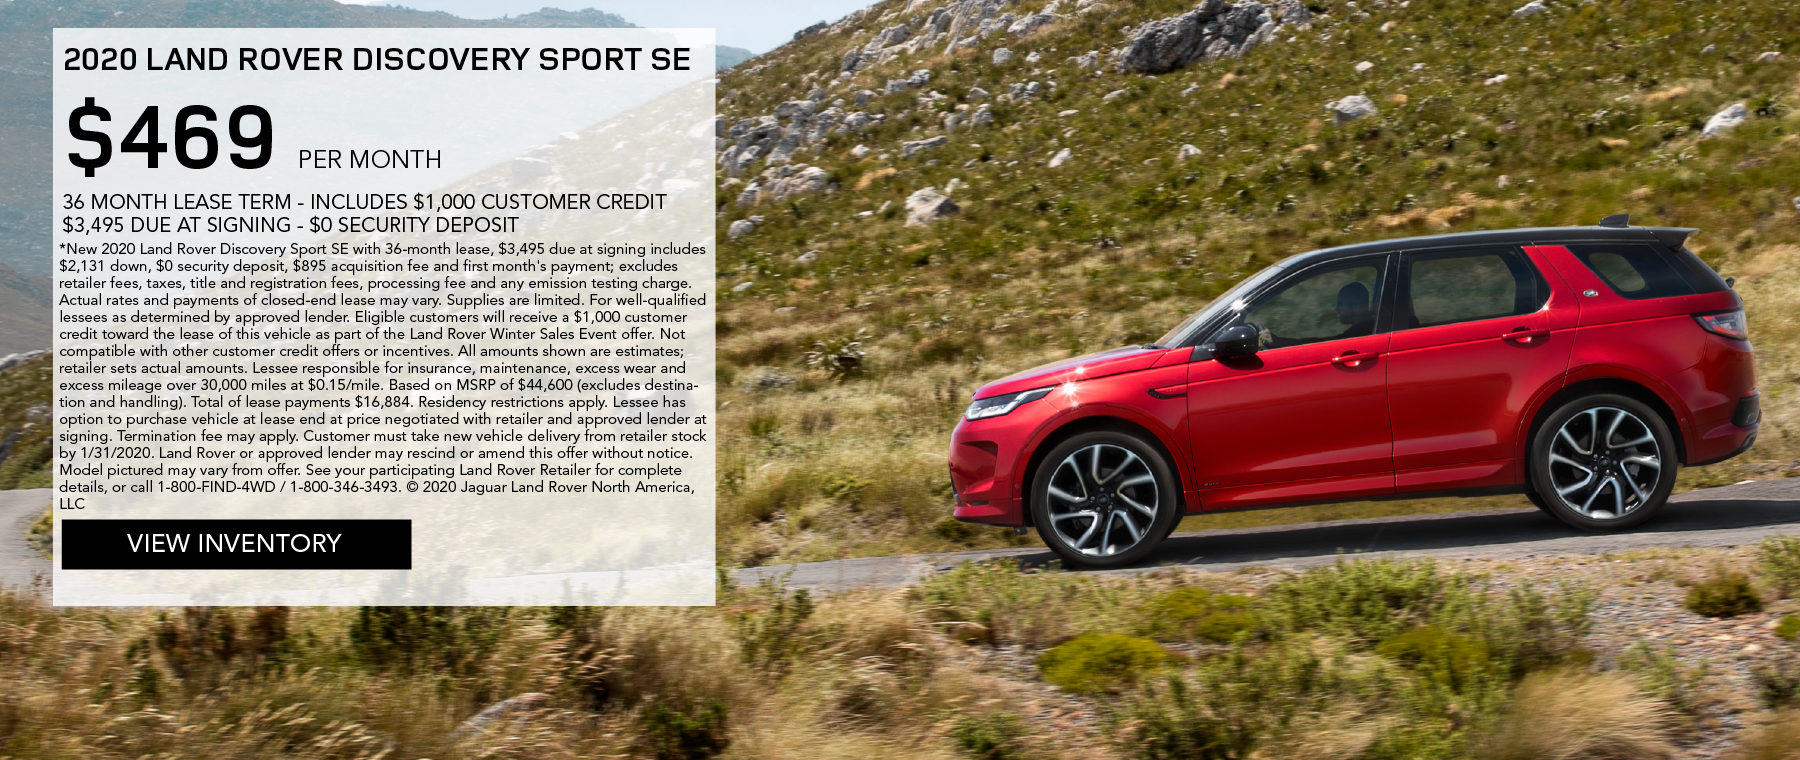 2020 LAND ROVER DISCOVERY SPORT SE_$469 PER MONTH_$3,495 DUE AT SIGNING_$0 SECURITY DEPOSIT_36 MONTH LEASE TERM_$10,000 MILES PER YEAR_INCLUDES $1,000 CUSTOMER CREDIT AS A PART OF THE LAND ROVER WINTER SALES EVENT_EXPIRES JANUARY 31, 2020_VIEW INVENTORY_RED LAND ROVER DISCOVERY SPORT SE DRIVING ON ROCKY TERRAIN IN MOUNTAINS